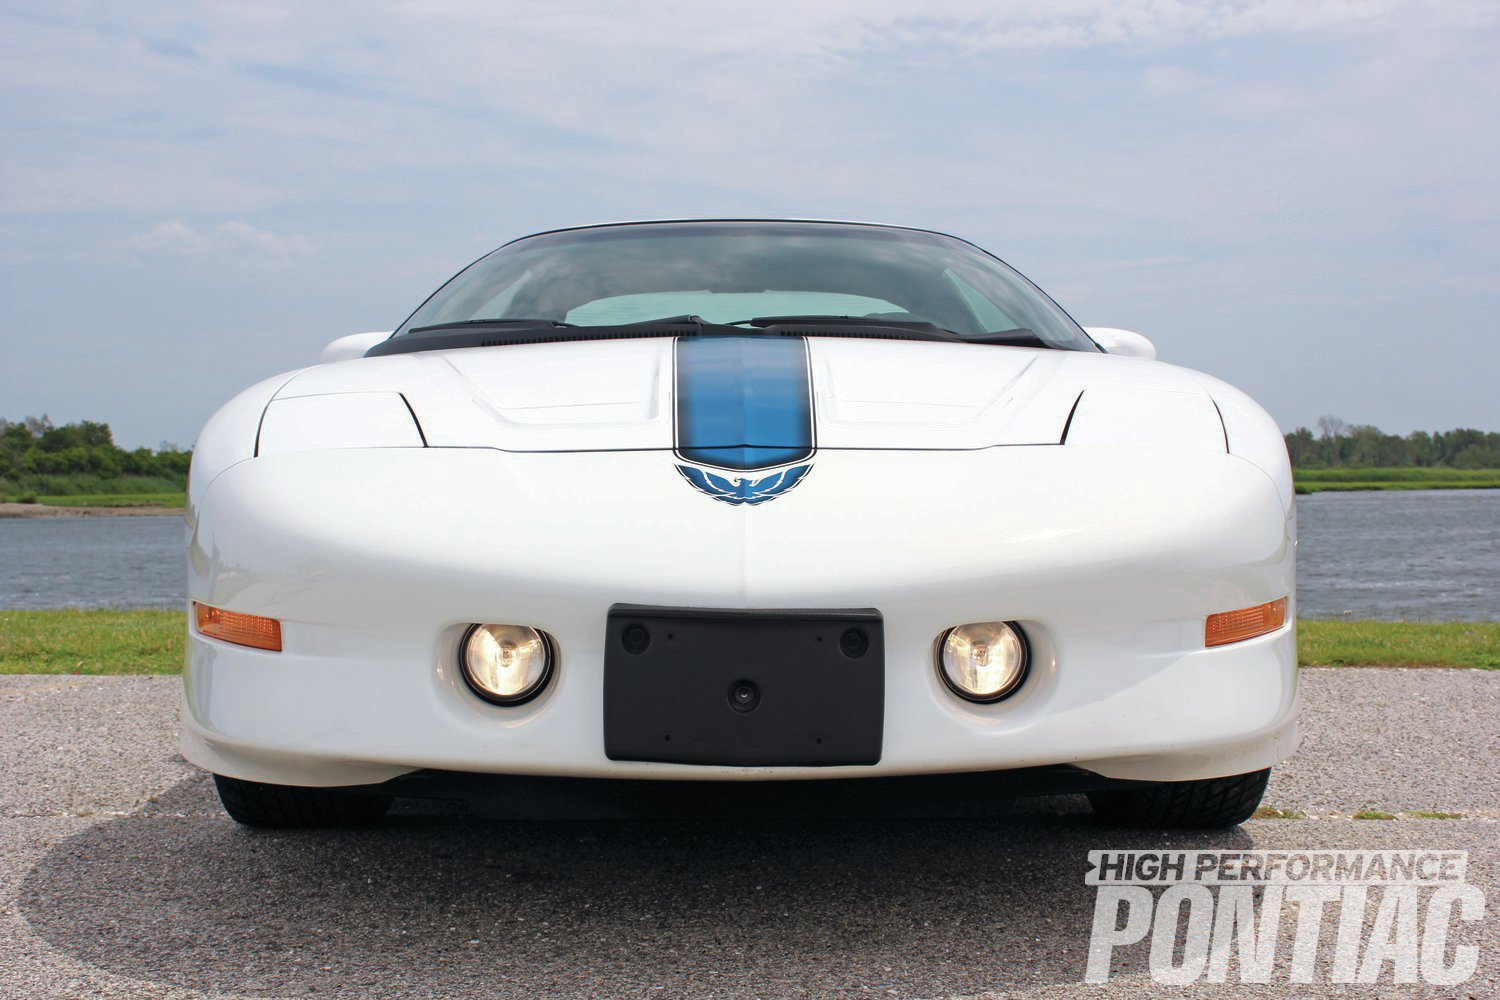 The '93-'97 Trans Am's front fascia screams aerodynamics and make the Bird look like it's in flight even when parked. The foglights were specific to Trans Ams only, and not shared with Firebirds and Formulas that year.